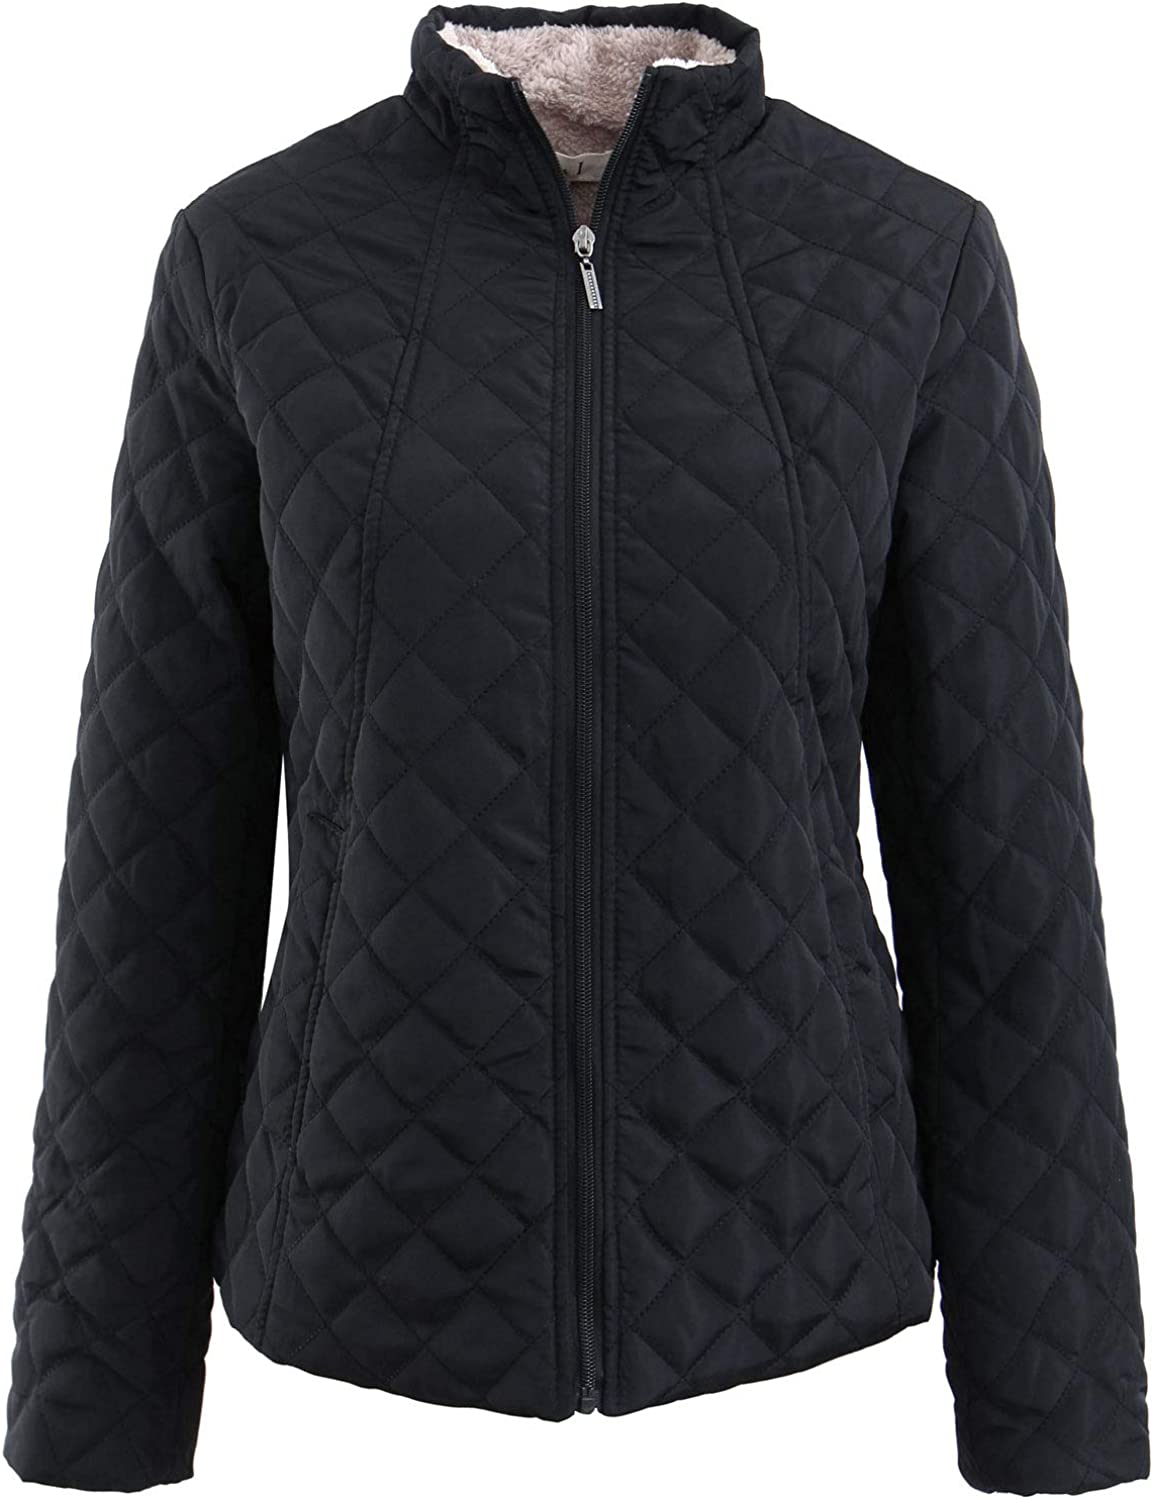 Amormio Womens Classic Full-Zip Slim-Fit Lamb Wool Coat Diamond Lightweight Padded Quilted Jacket Parka Outwear